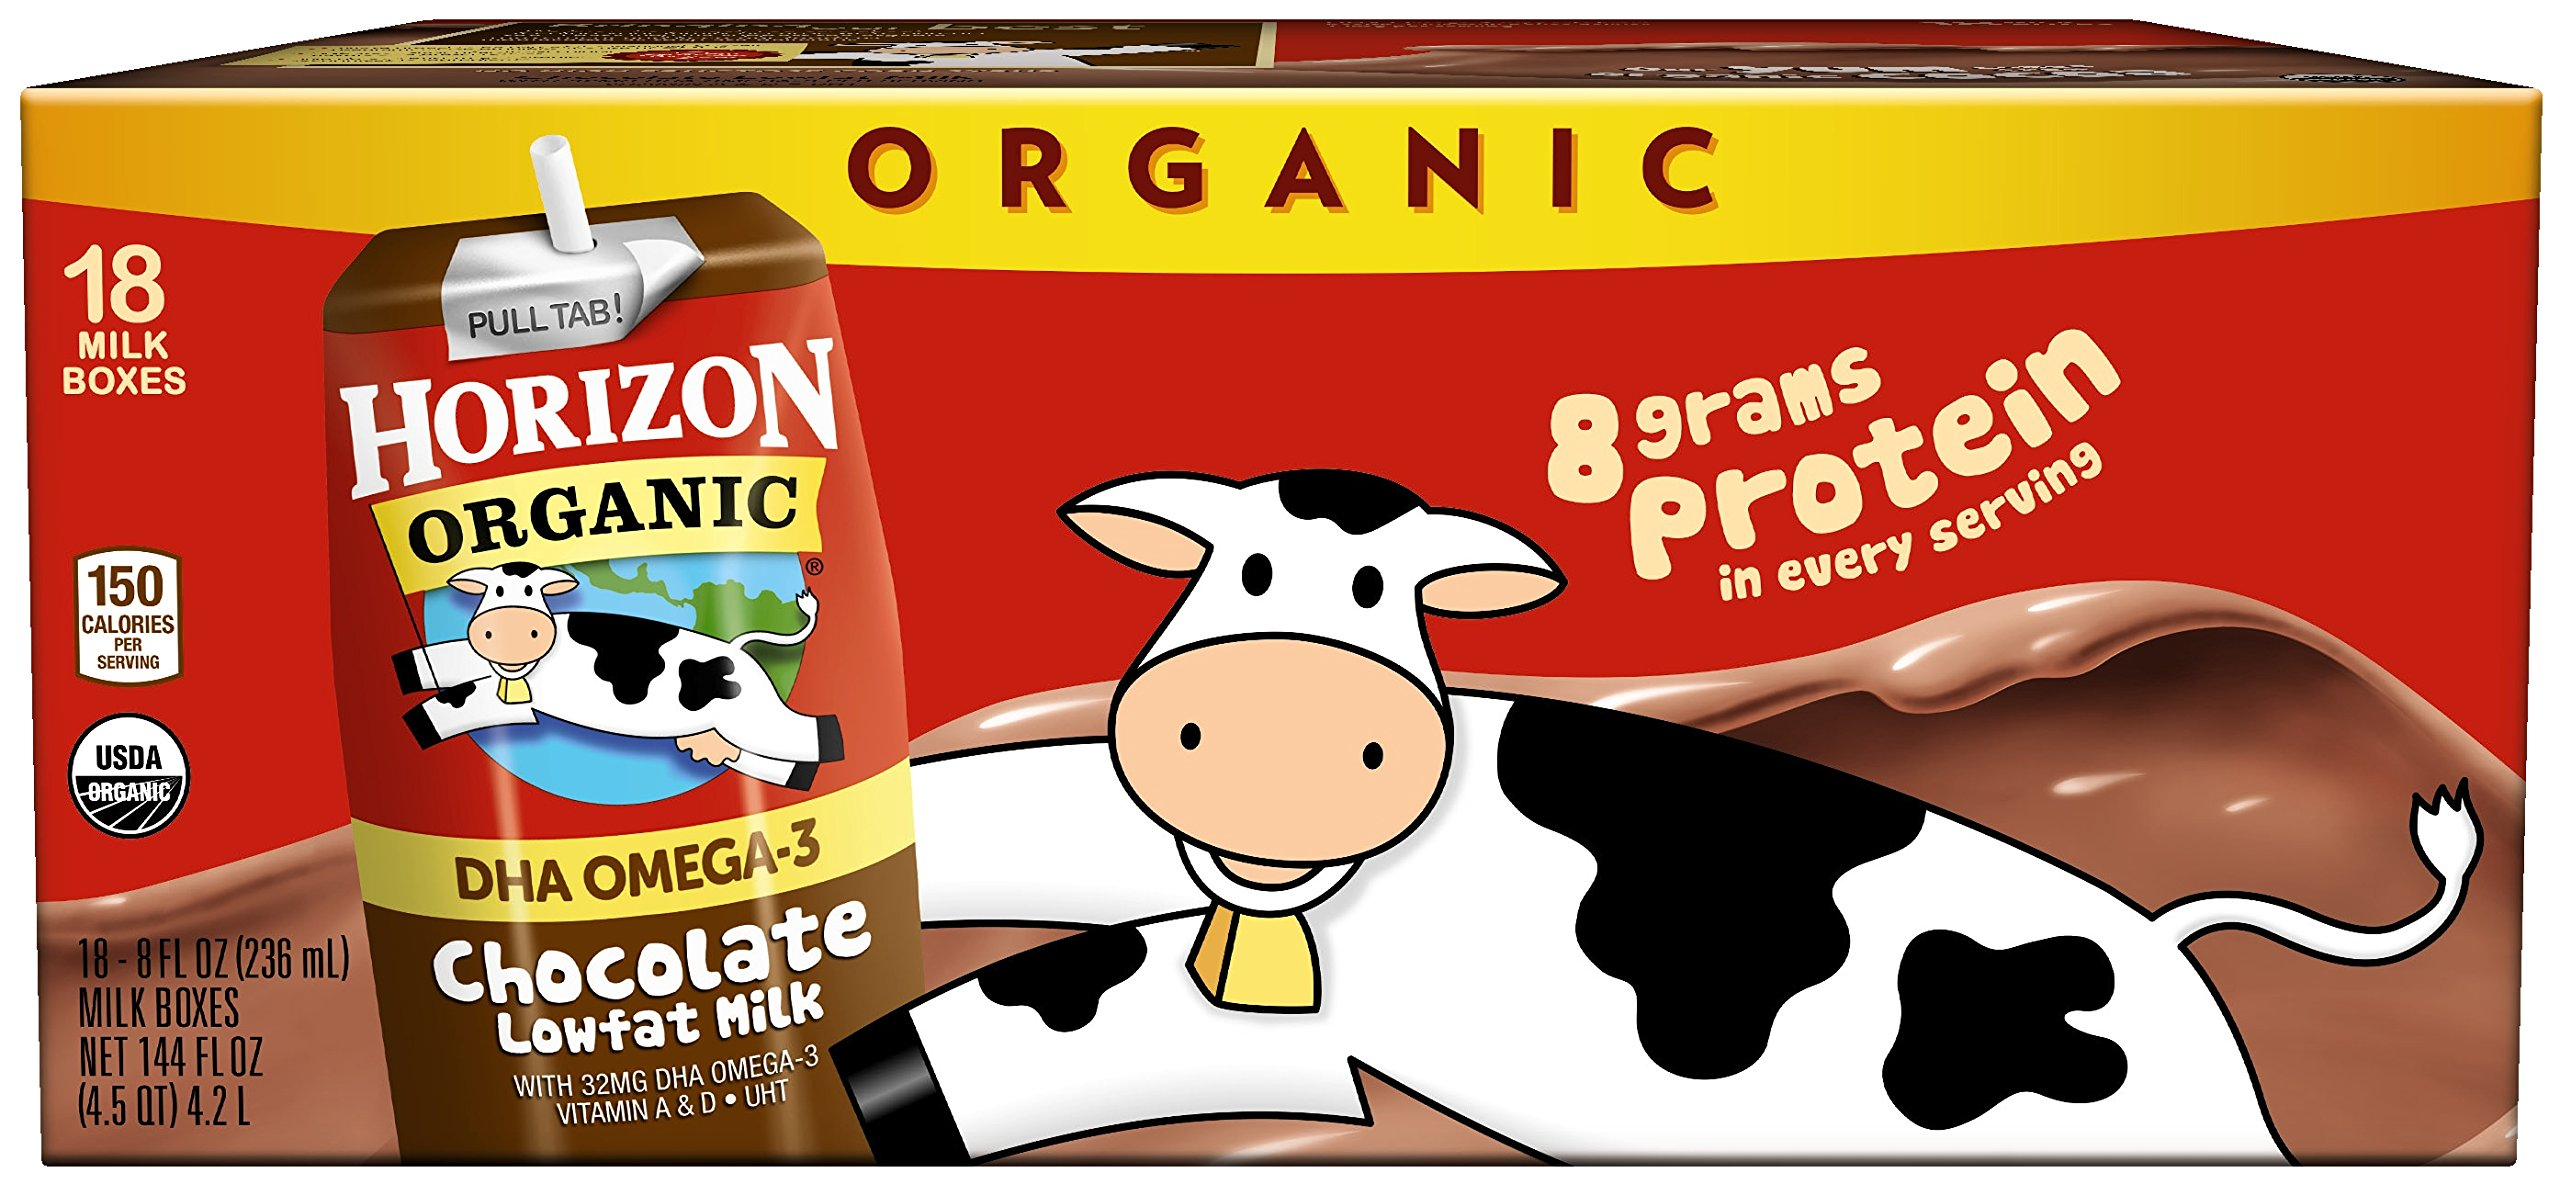 Horizon Organic, Lowfat Organic Milk Box With DHA Omega-3, Chocolate, 8 Ounce (Pack of 18), Single Serve, Shelf Stable Organic Chocolate Flavored Lowfat Milk, Great for School Lunch Boxes, Snacks